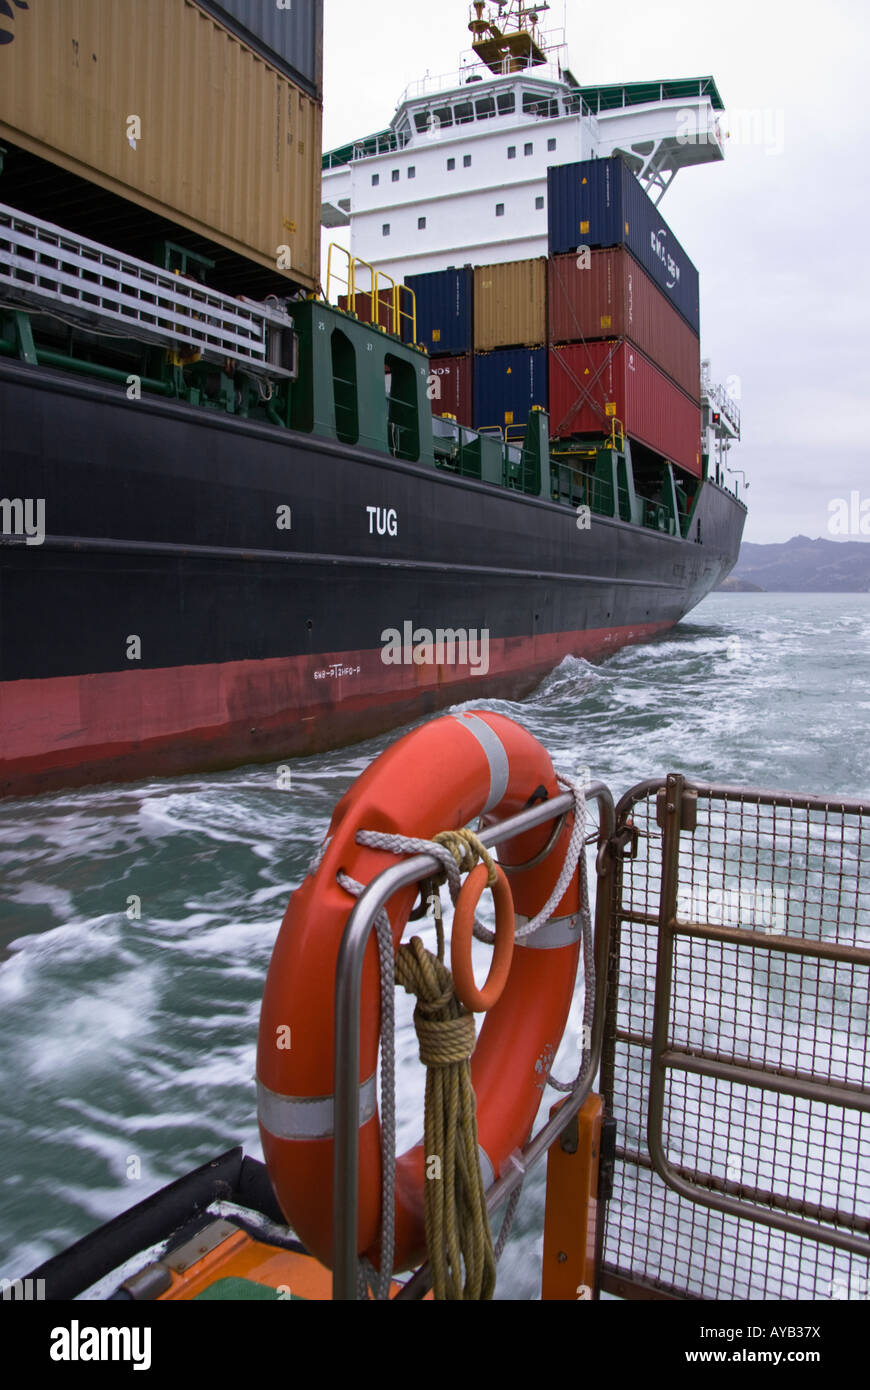 The aft end of a container ship as viewed from the pilot boat coming alongside that ship to collect the pilot Stock Photo